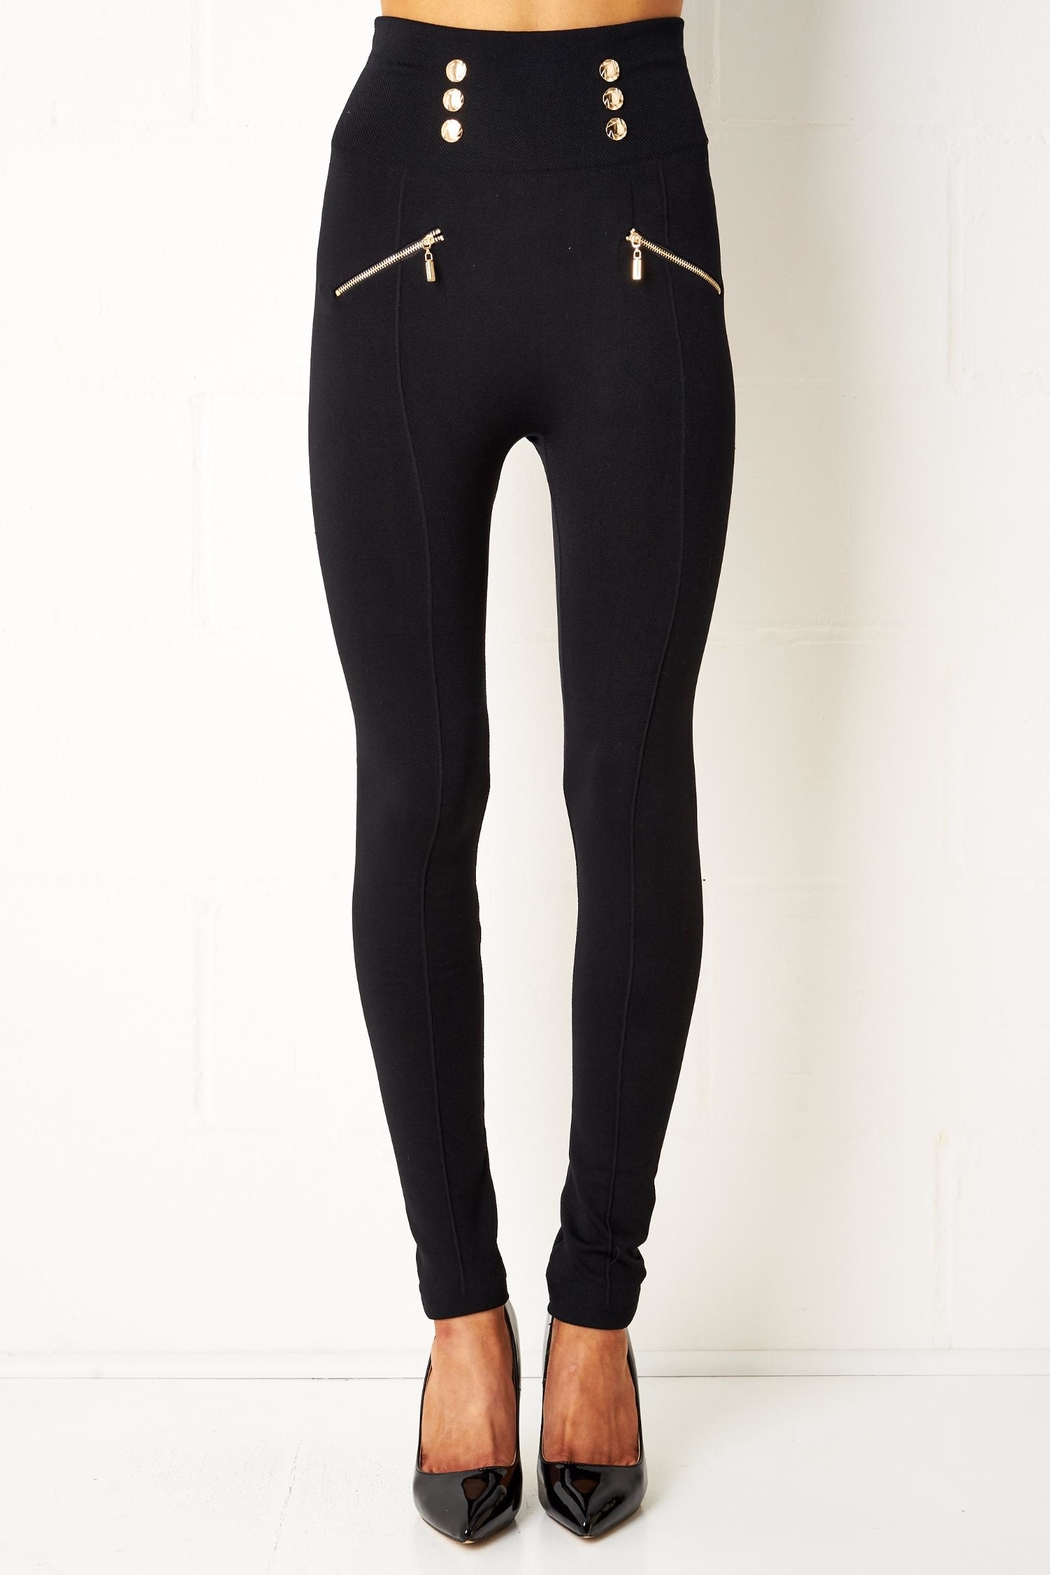 frontrow Black Gold Button Leggings - Main Image